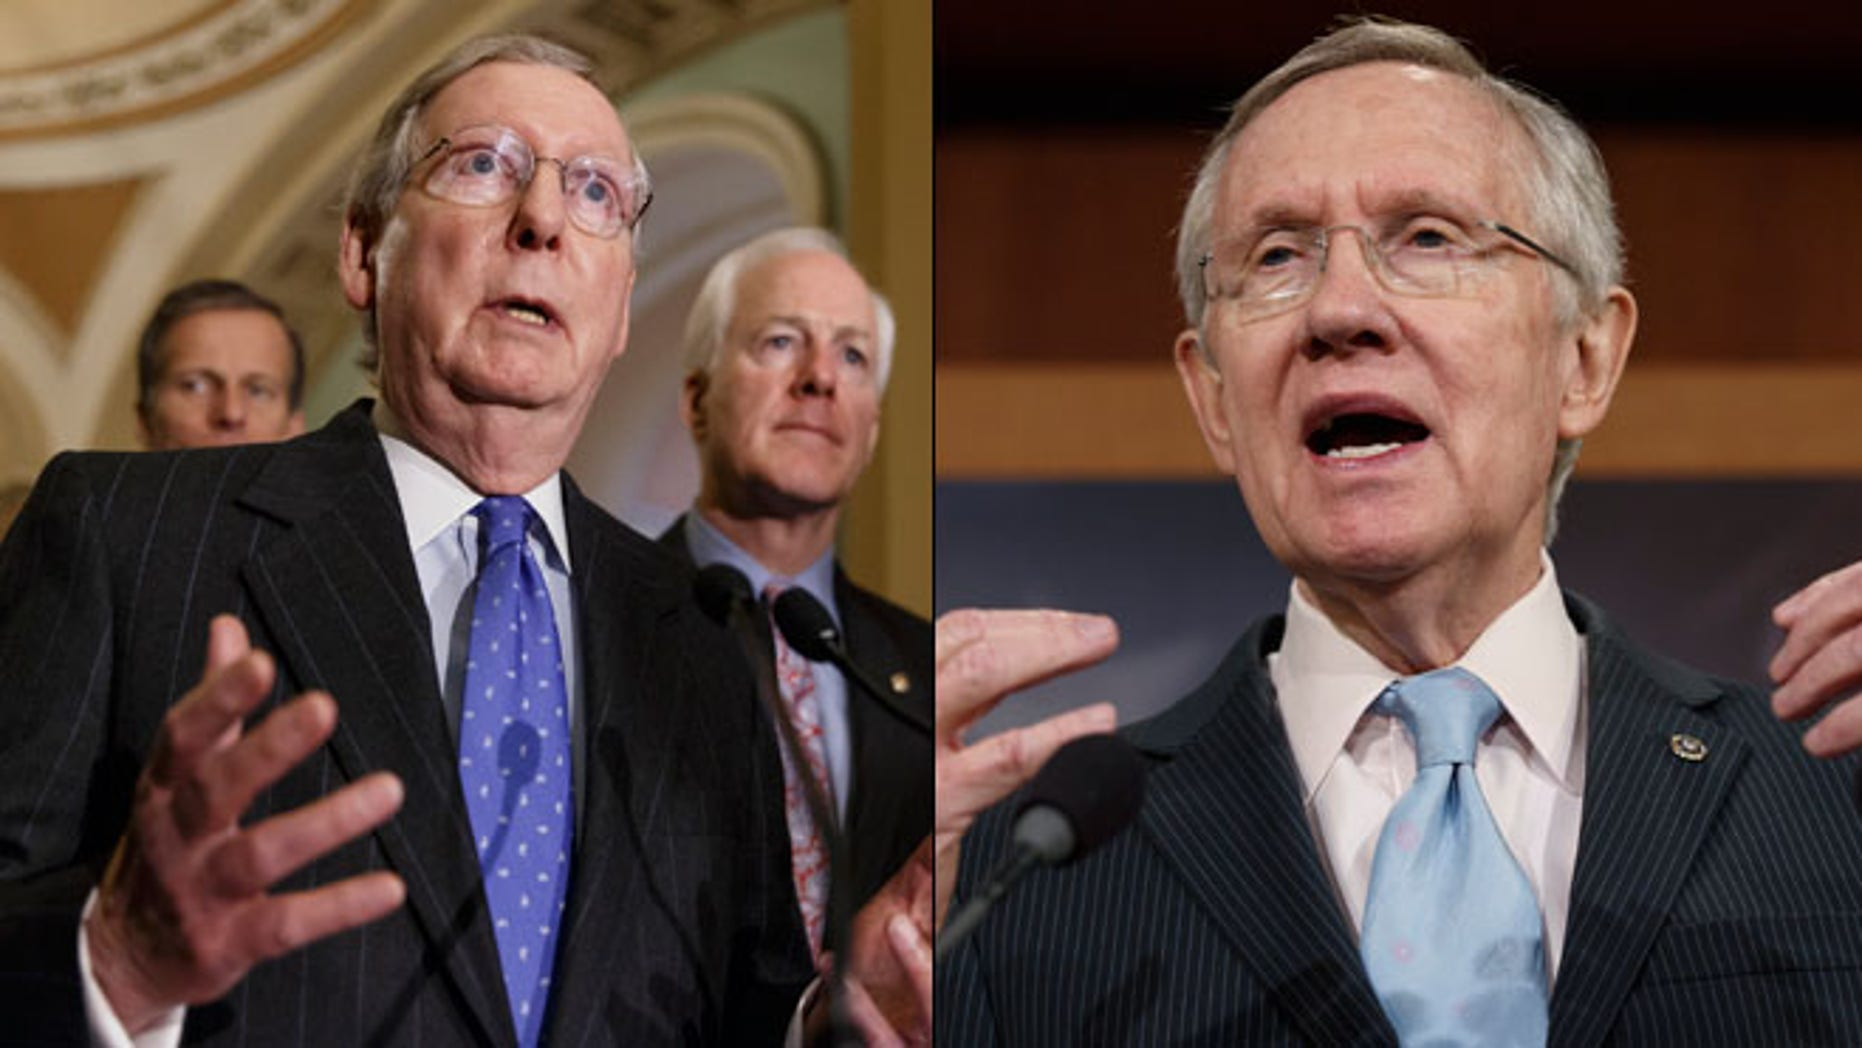 Shown here are Senate Republican Leader Mitch McConnell, left, and Democratic Leader Harry Reid.